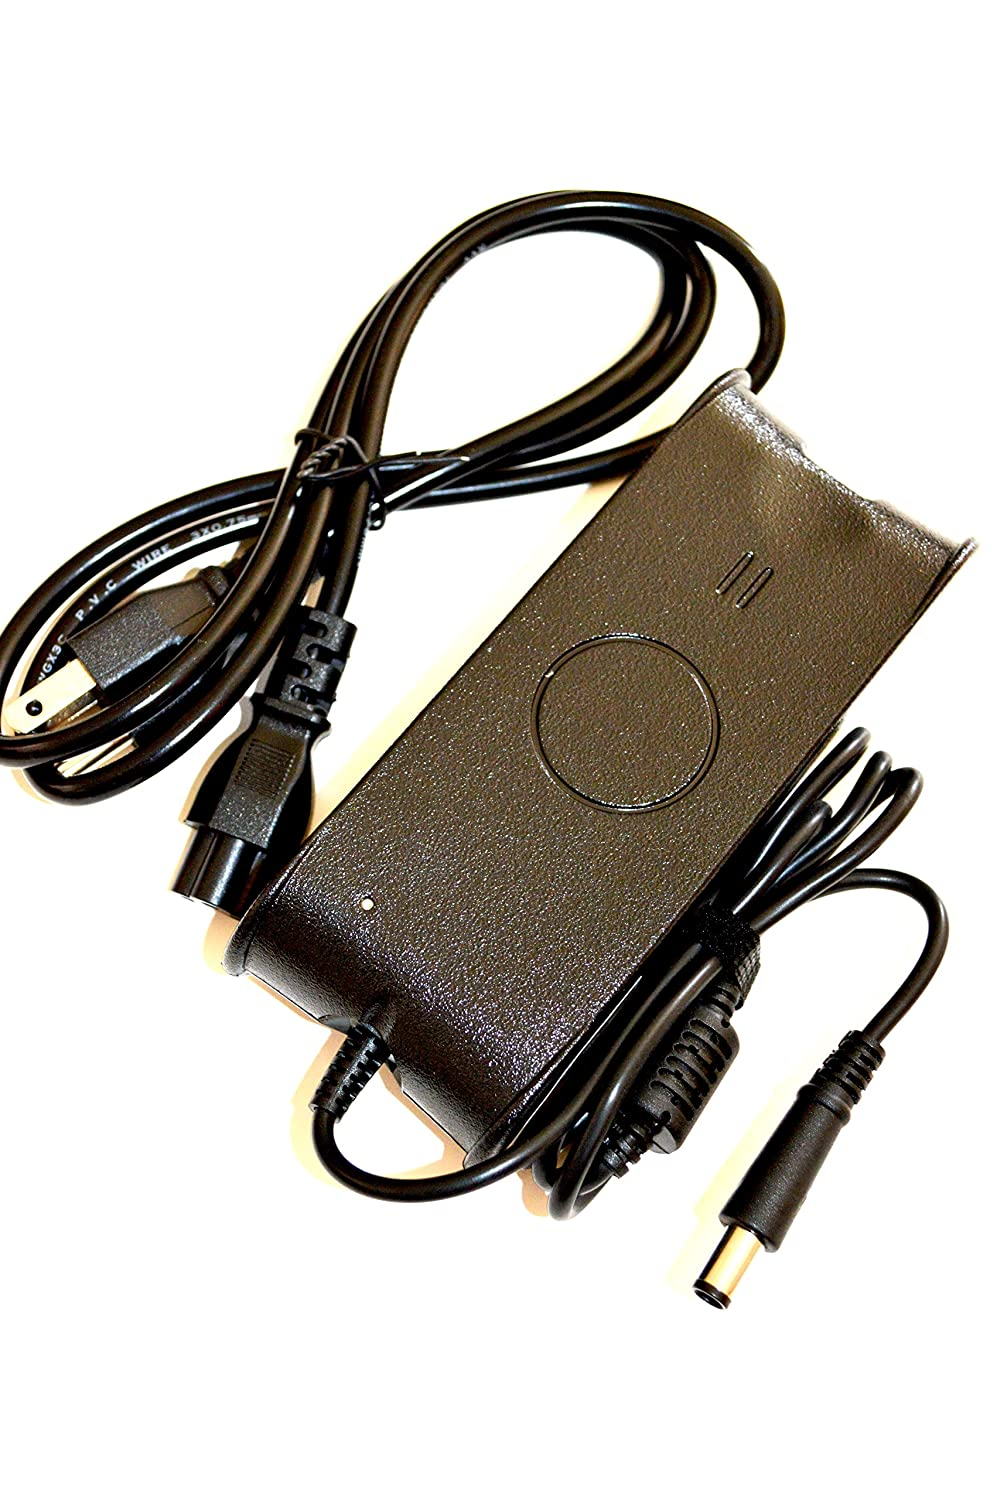 Power Supply Adapter Battery Charger For Dell Inspiron I3541-2000BLK Laptop